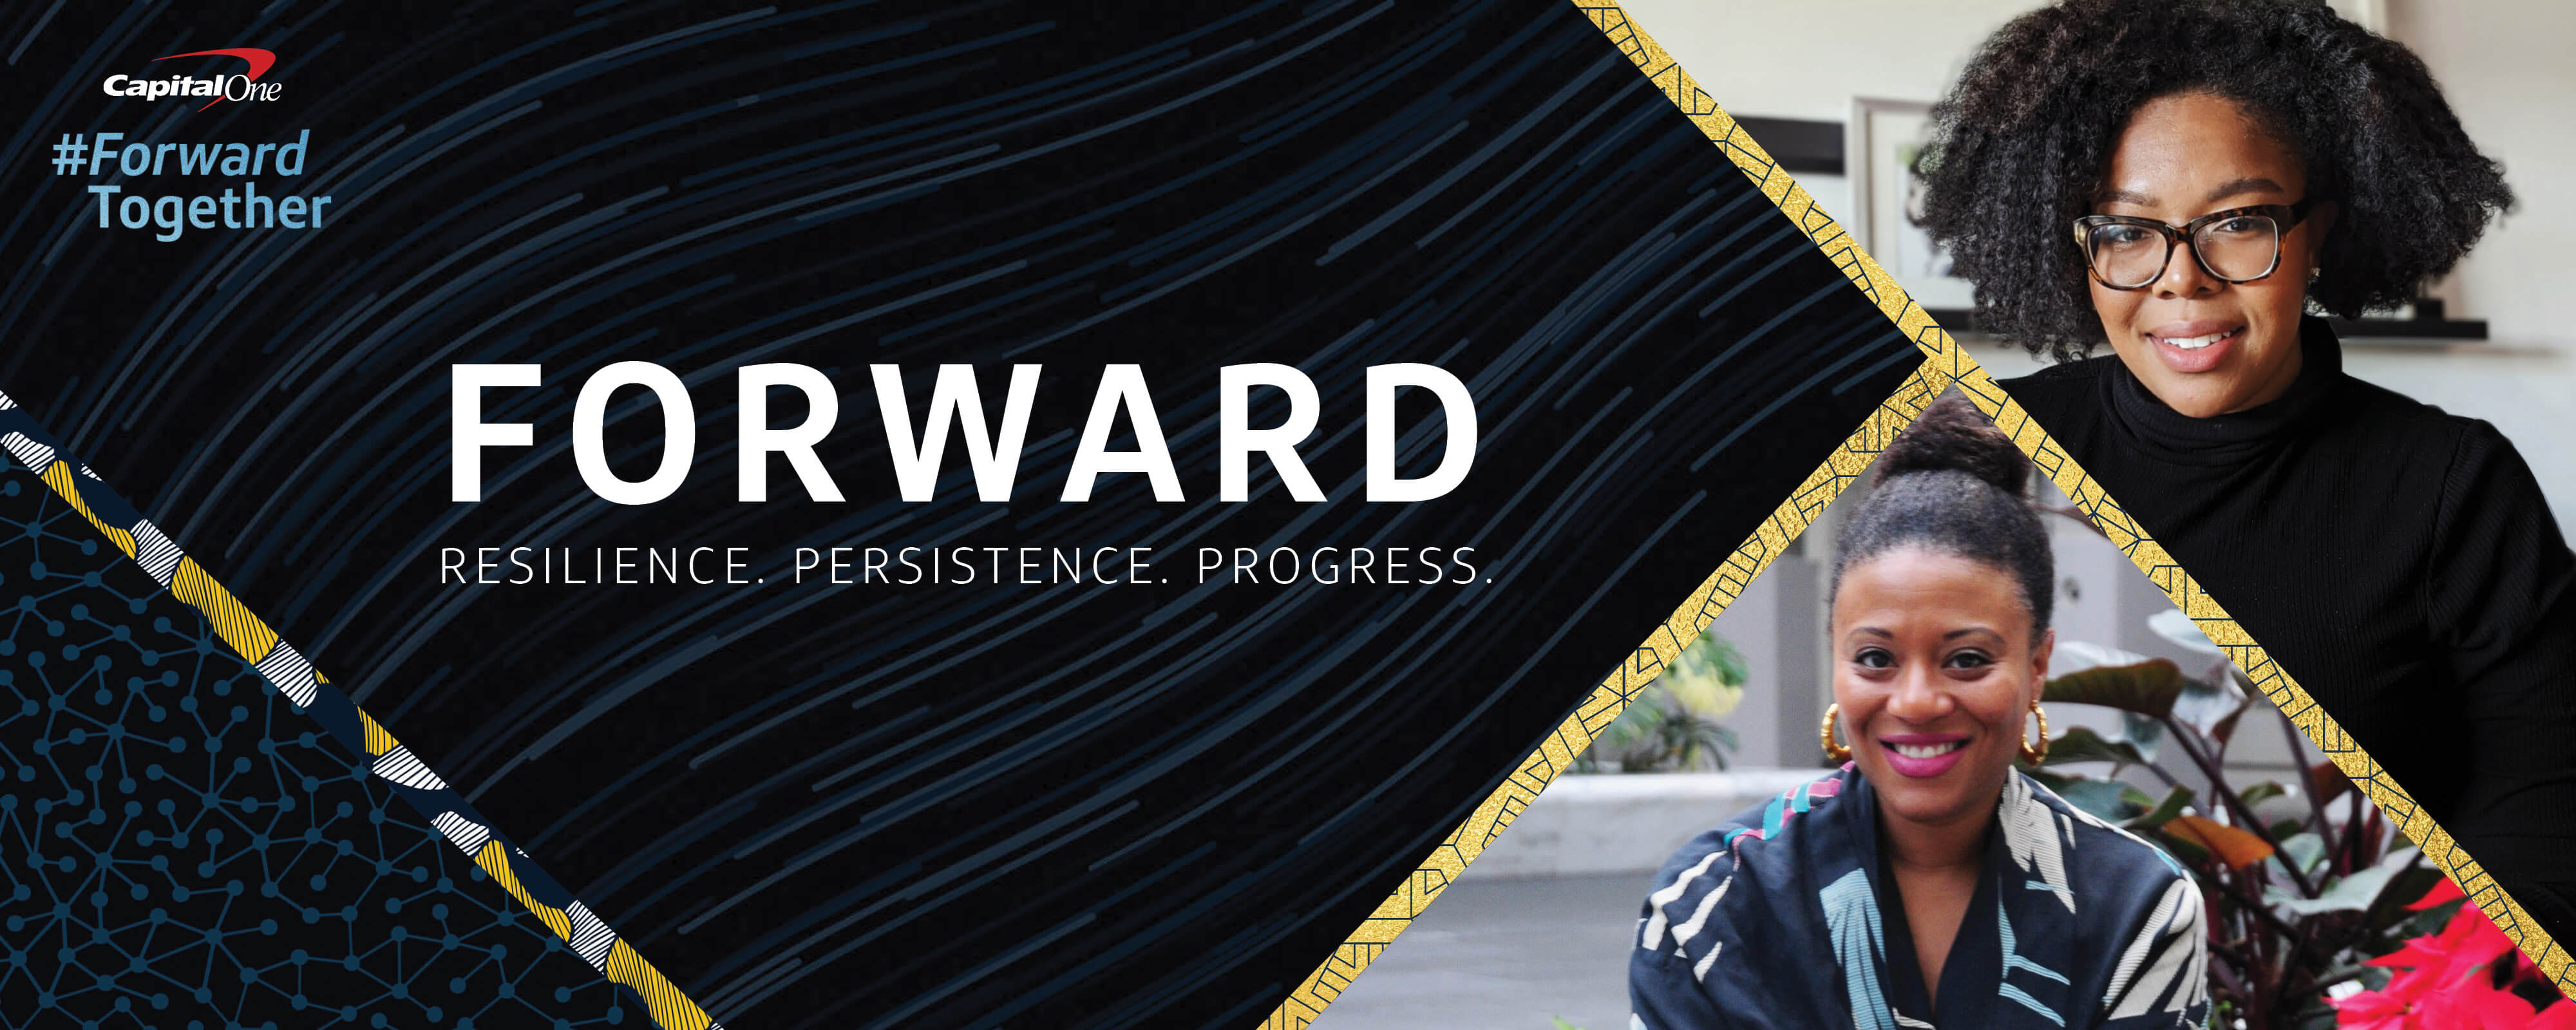 Capital One Black History Month #ForwardTogether. Resilience, Persistence, and Progress.